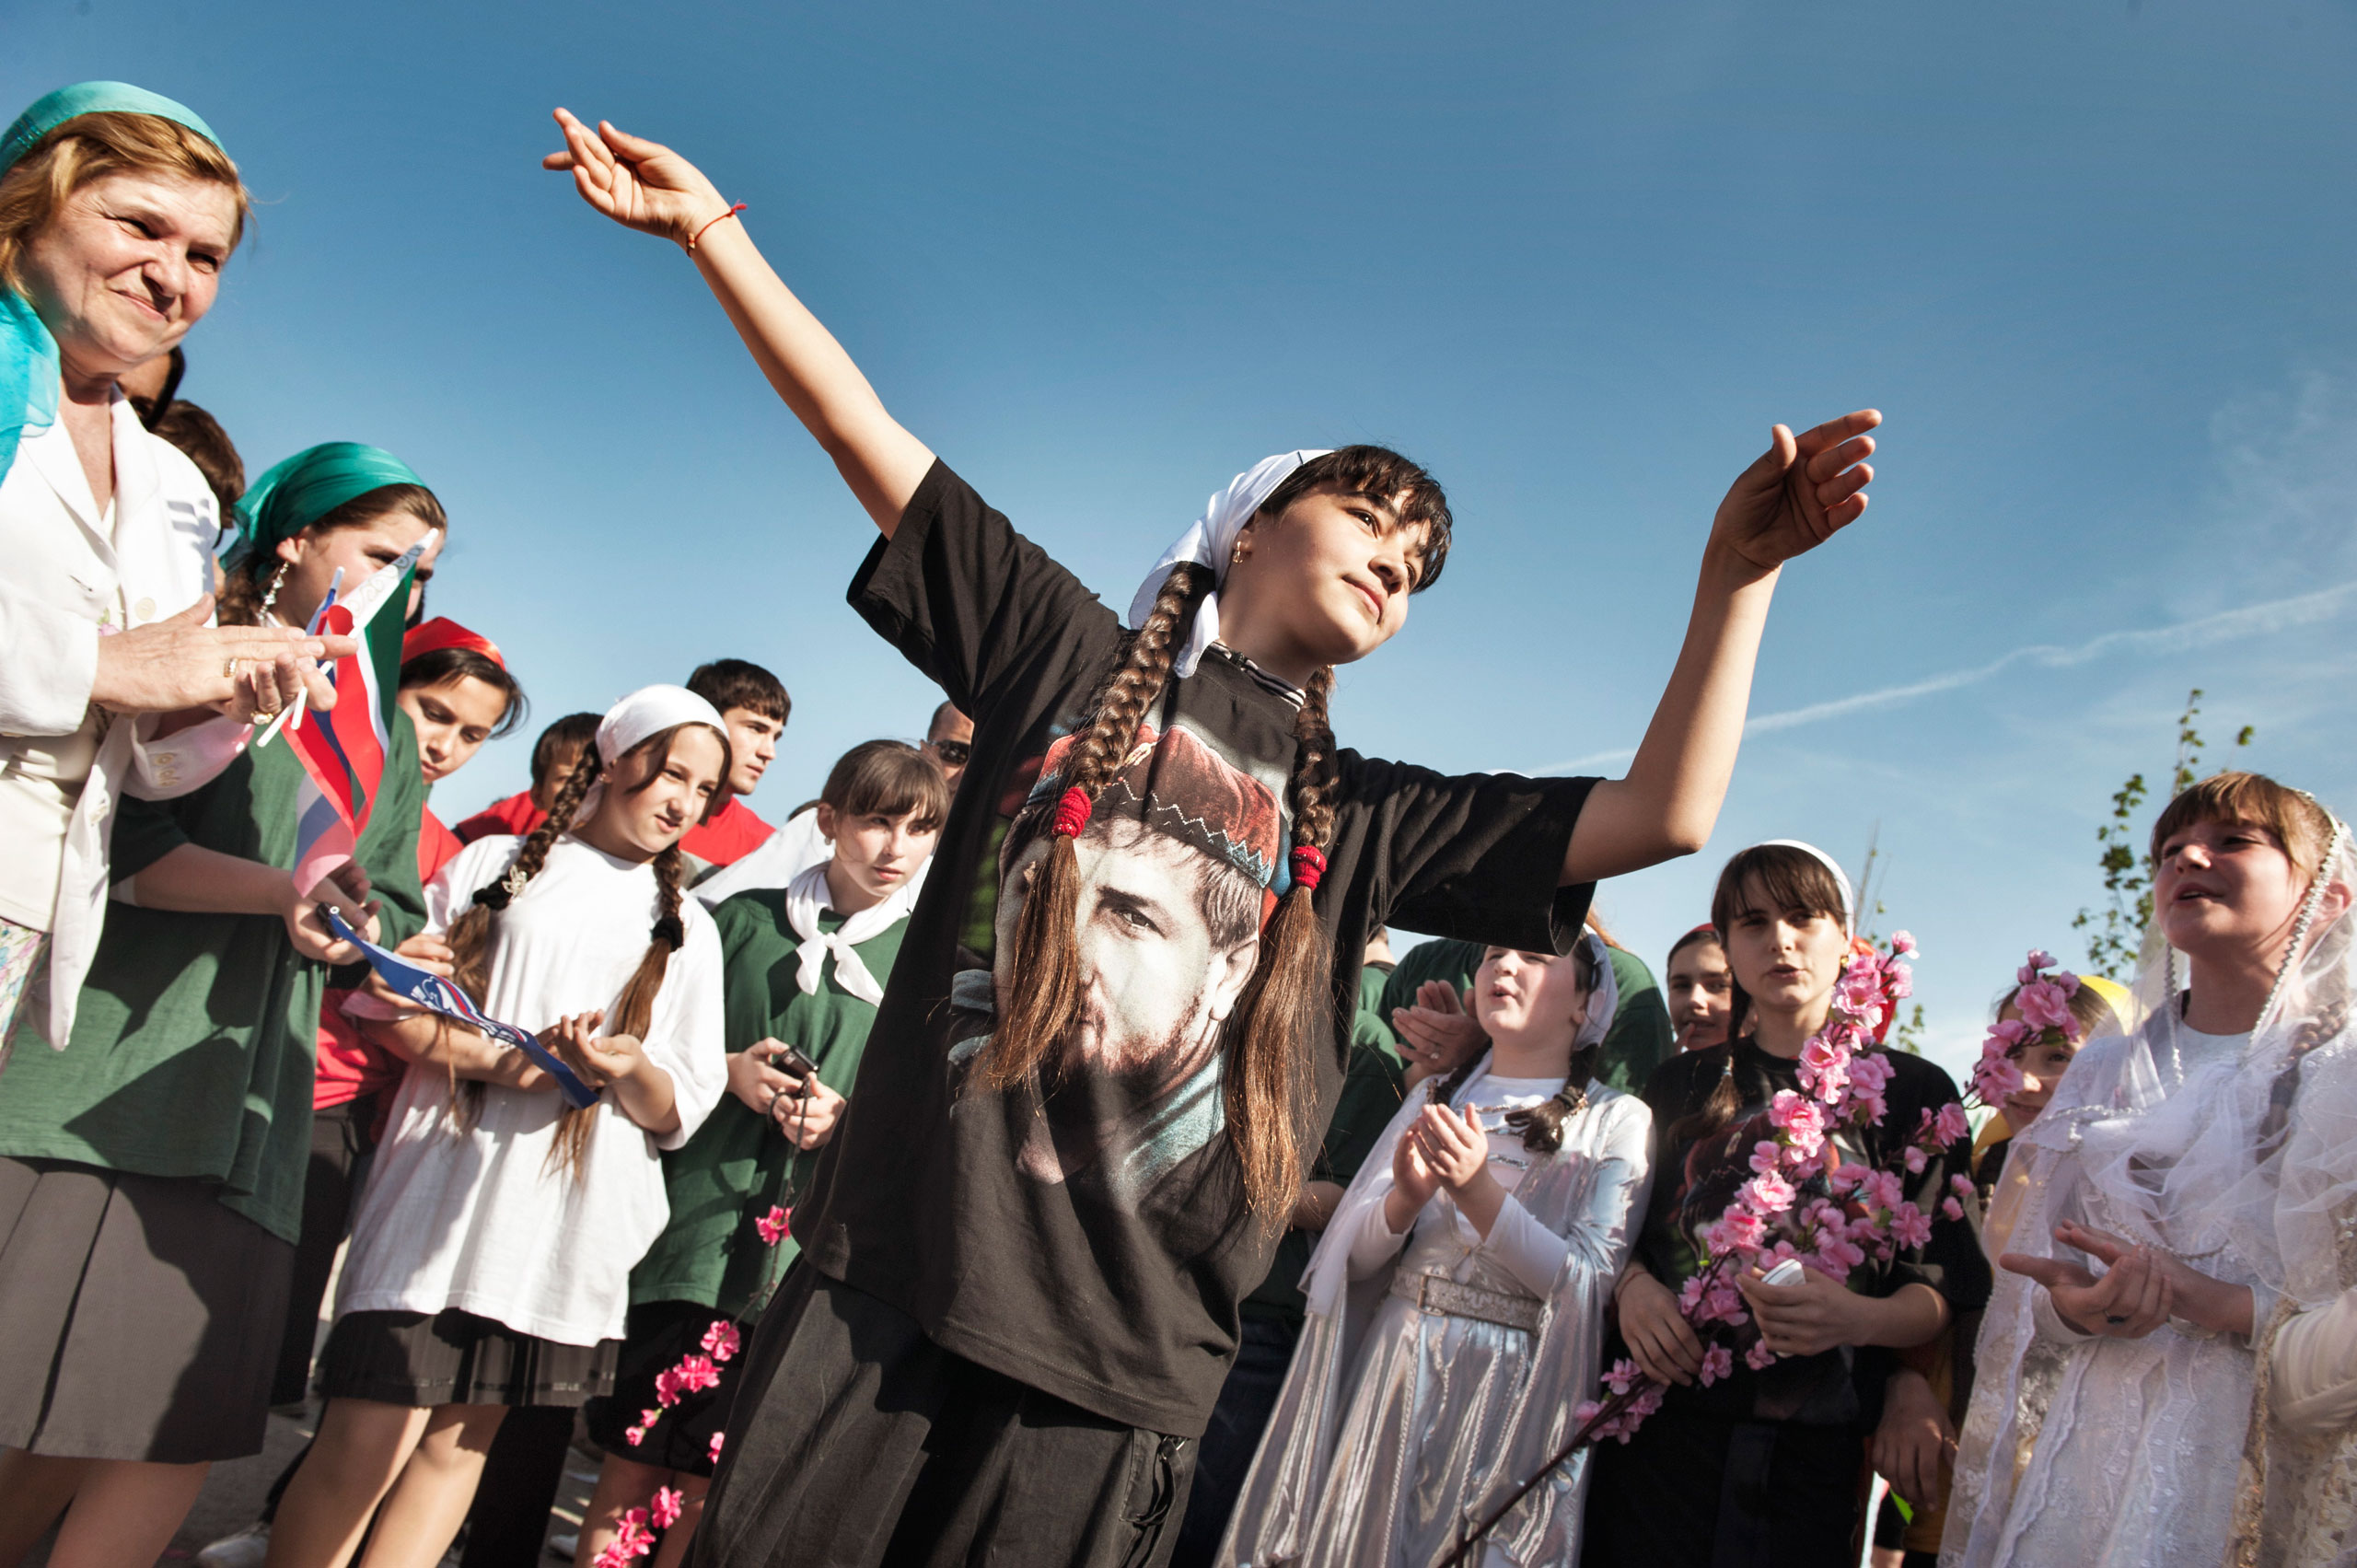 A Chechen girl dances while wearing a shirt showing a portrait of Ramzan Kadyrov, the Kremlin-backed leader of Chechnya, in the town of Gudermes, Chechnya, May 2010.